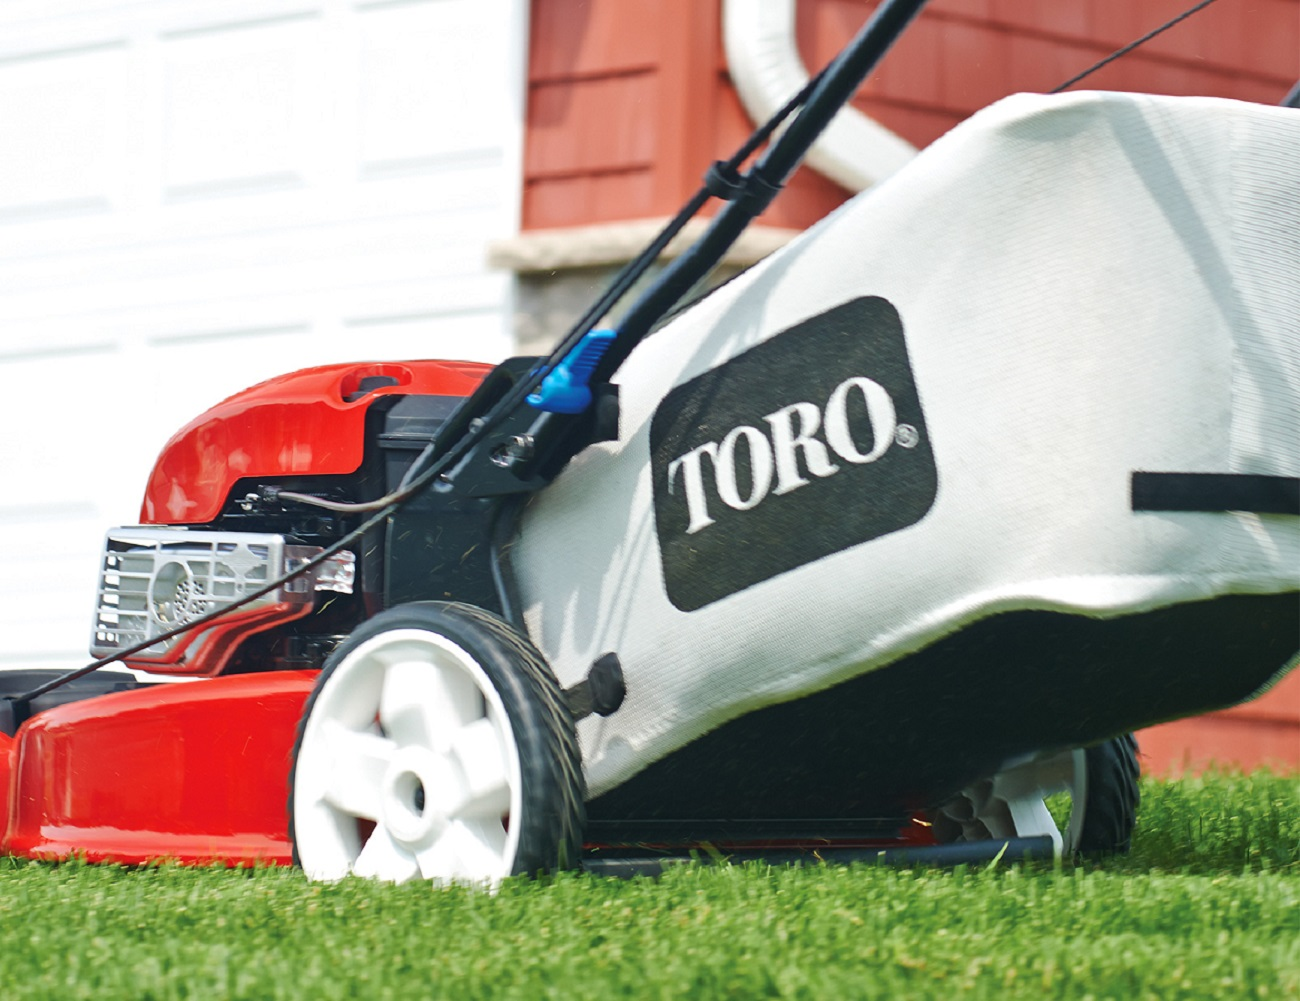 SmartStow Mower by Toro